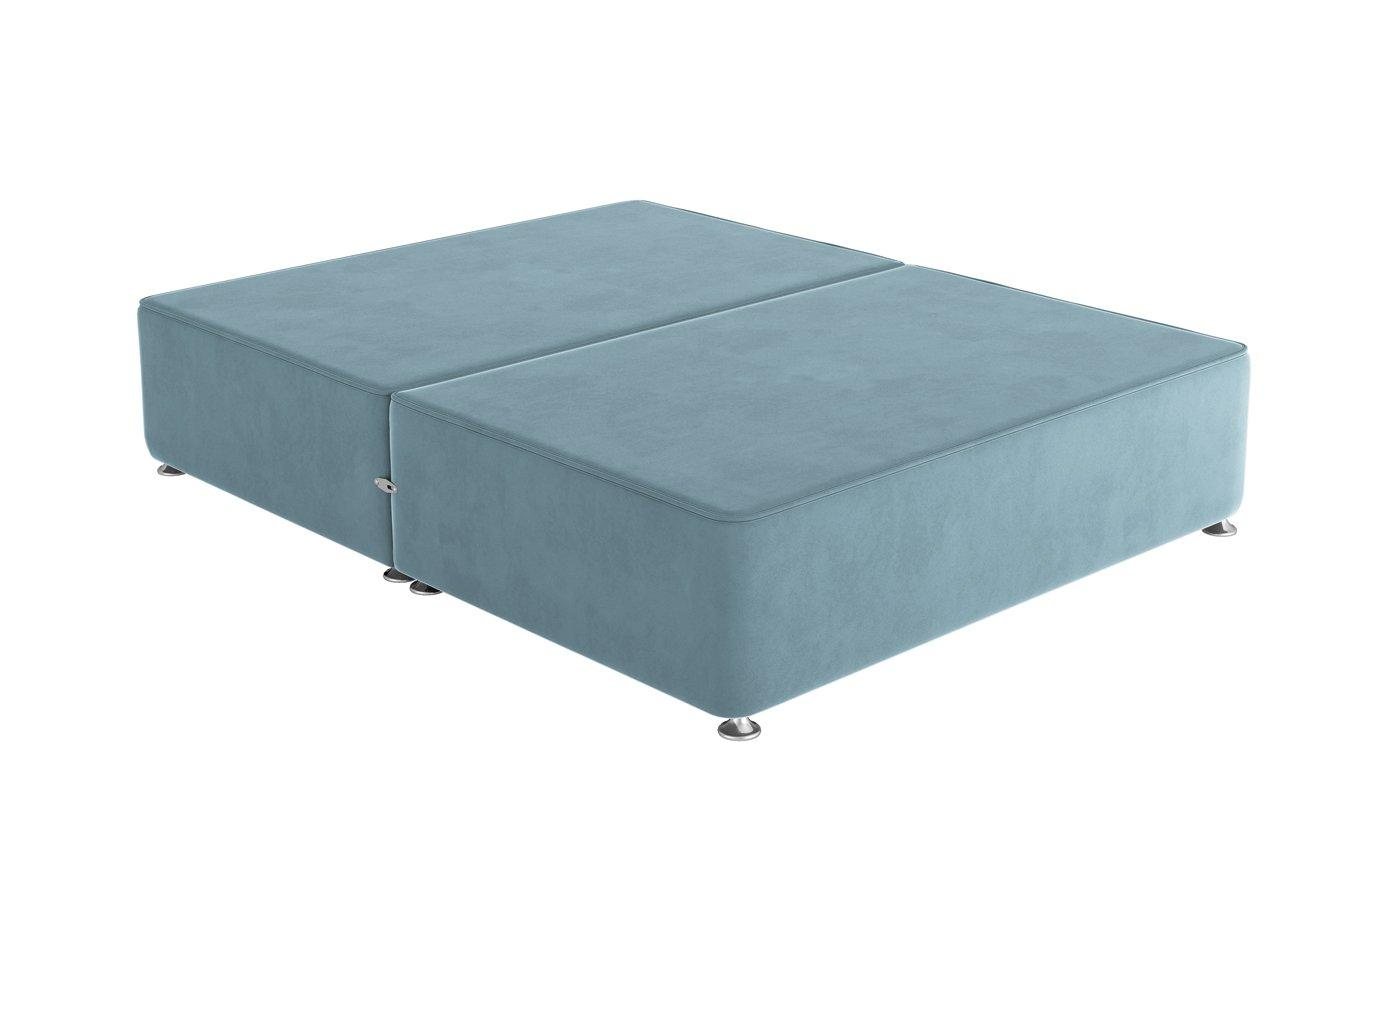 Sleepeezee 4'0 P/T 0 Drw Base Plush Sky 4'0 Small double BLUE